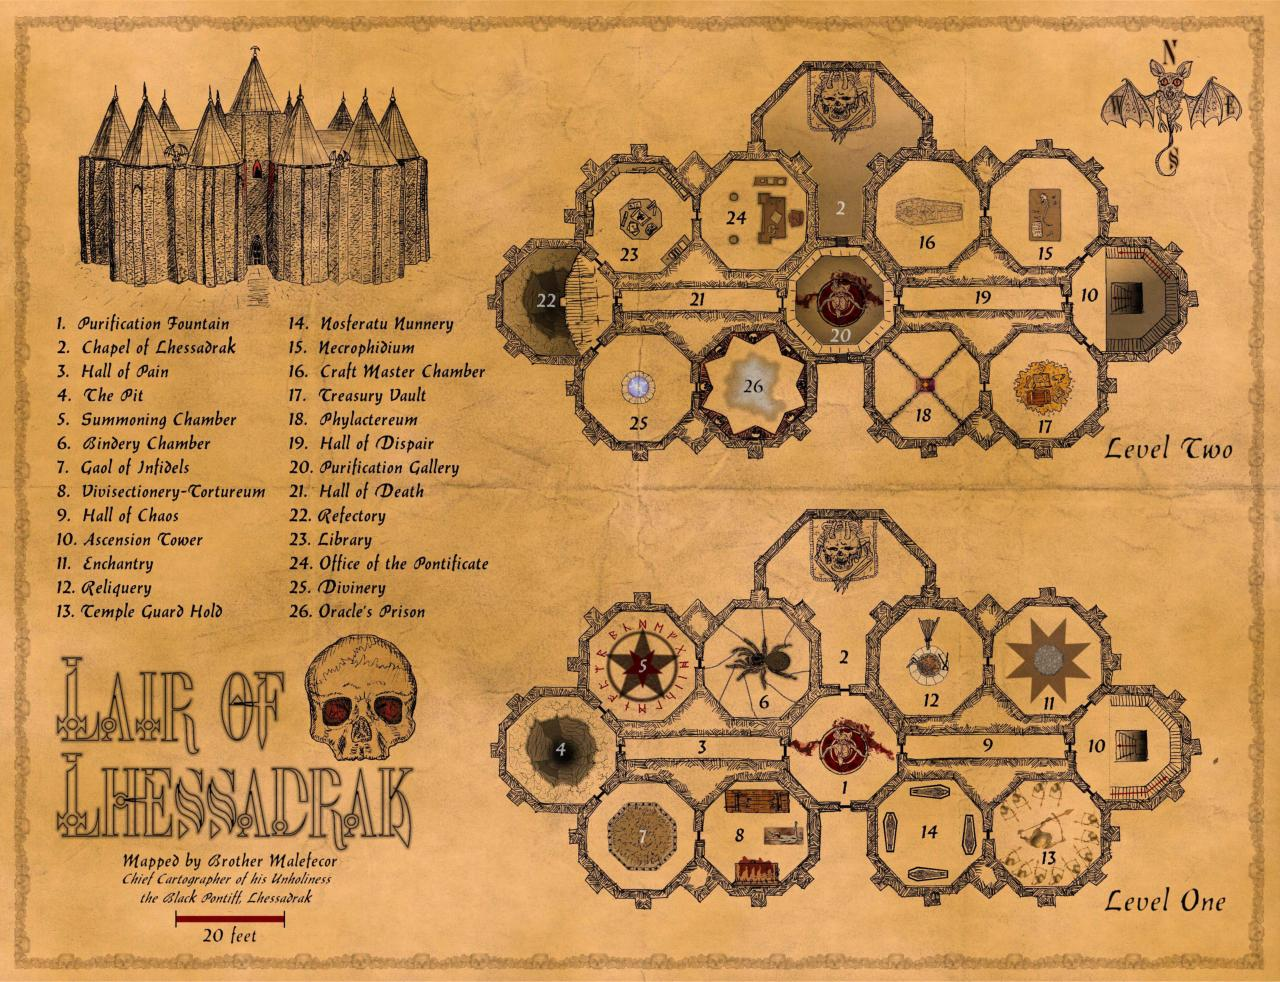 Lair of Lhessadrak - 2008 Contest Entry on Dndadventure.com